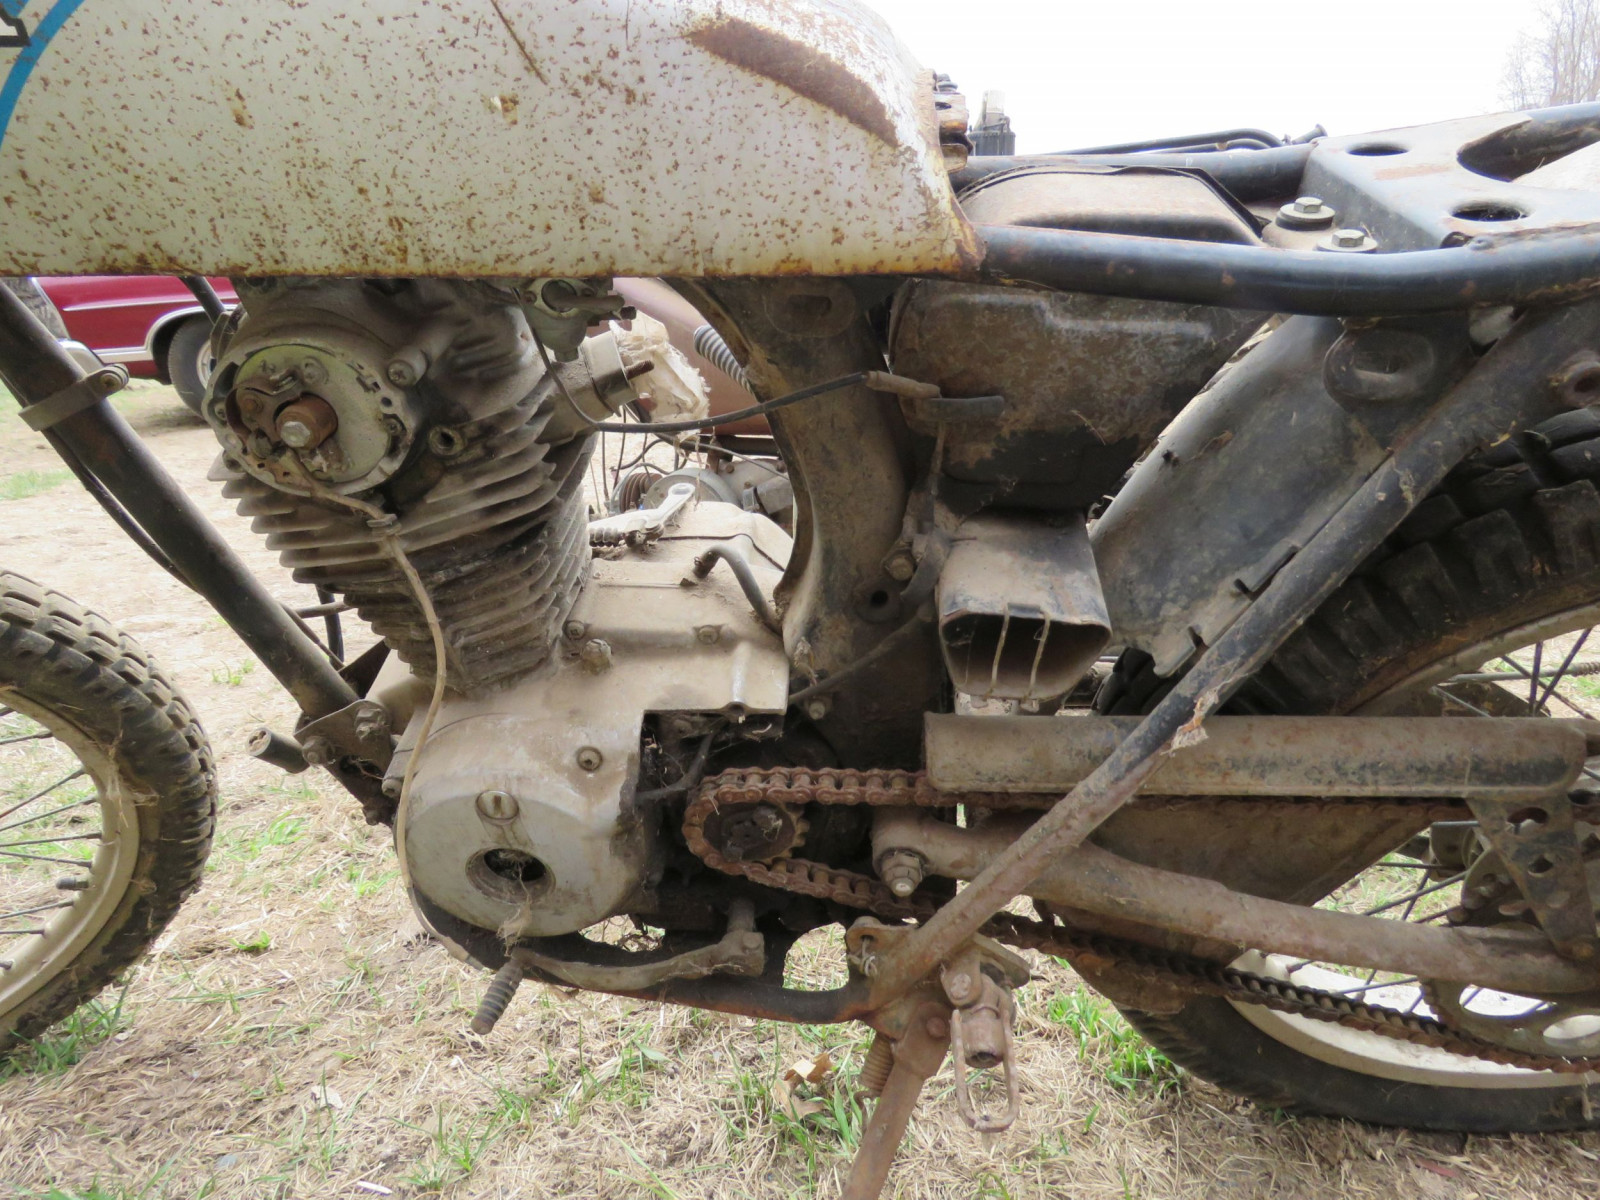 Honda Dirt bike for Project or parts - Image 4